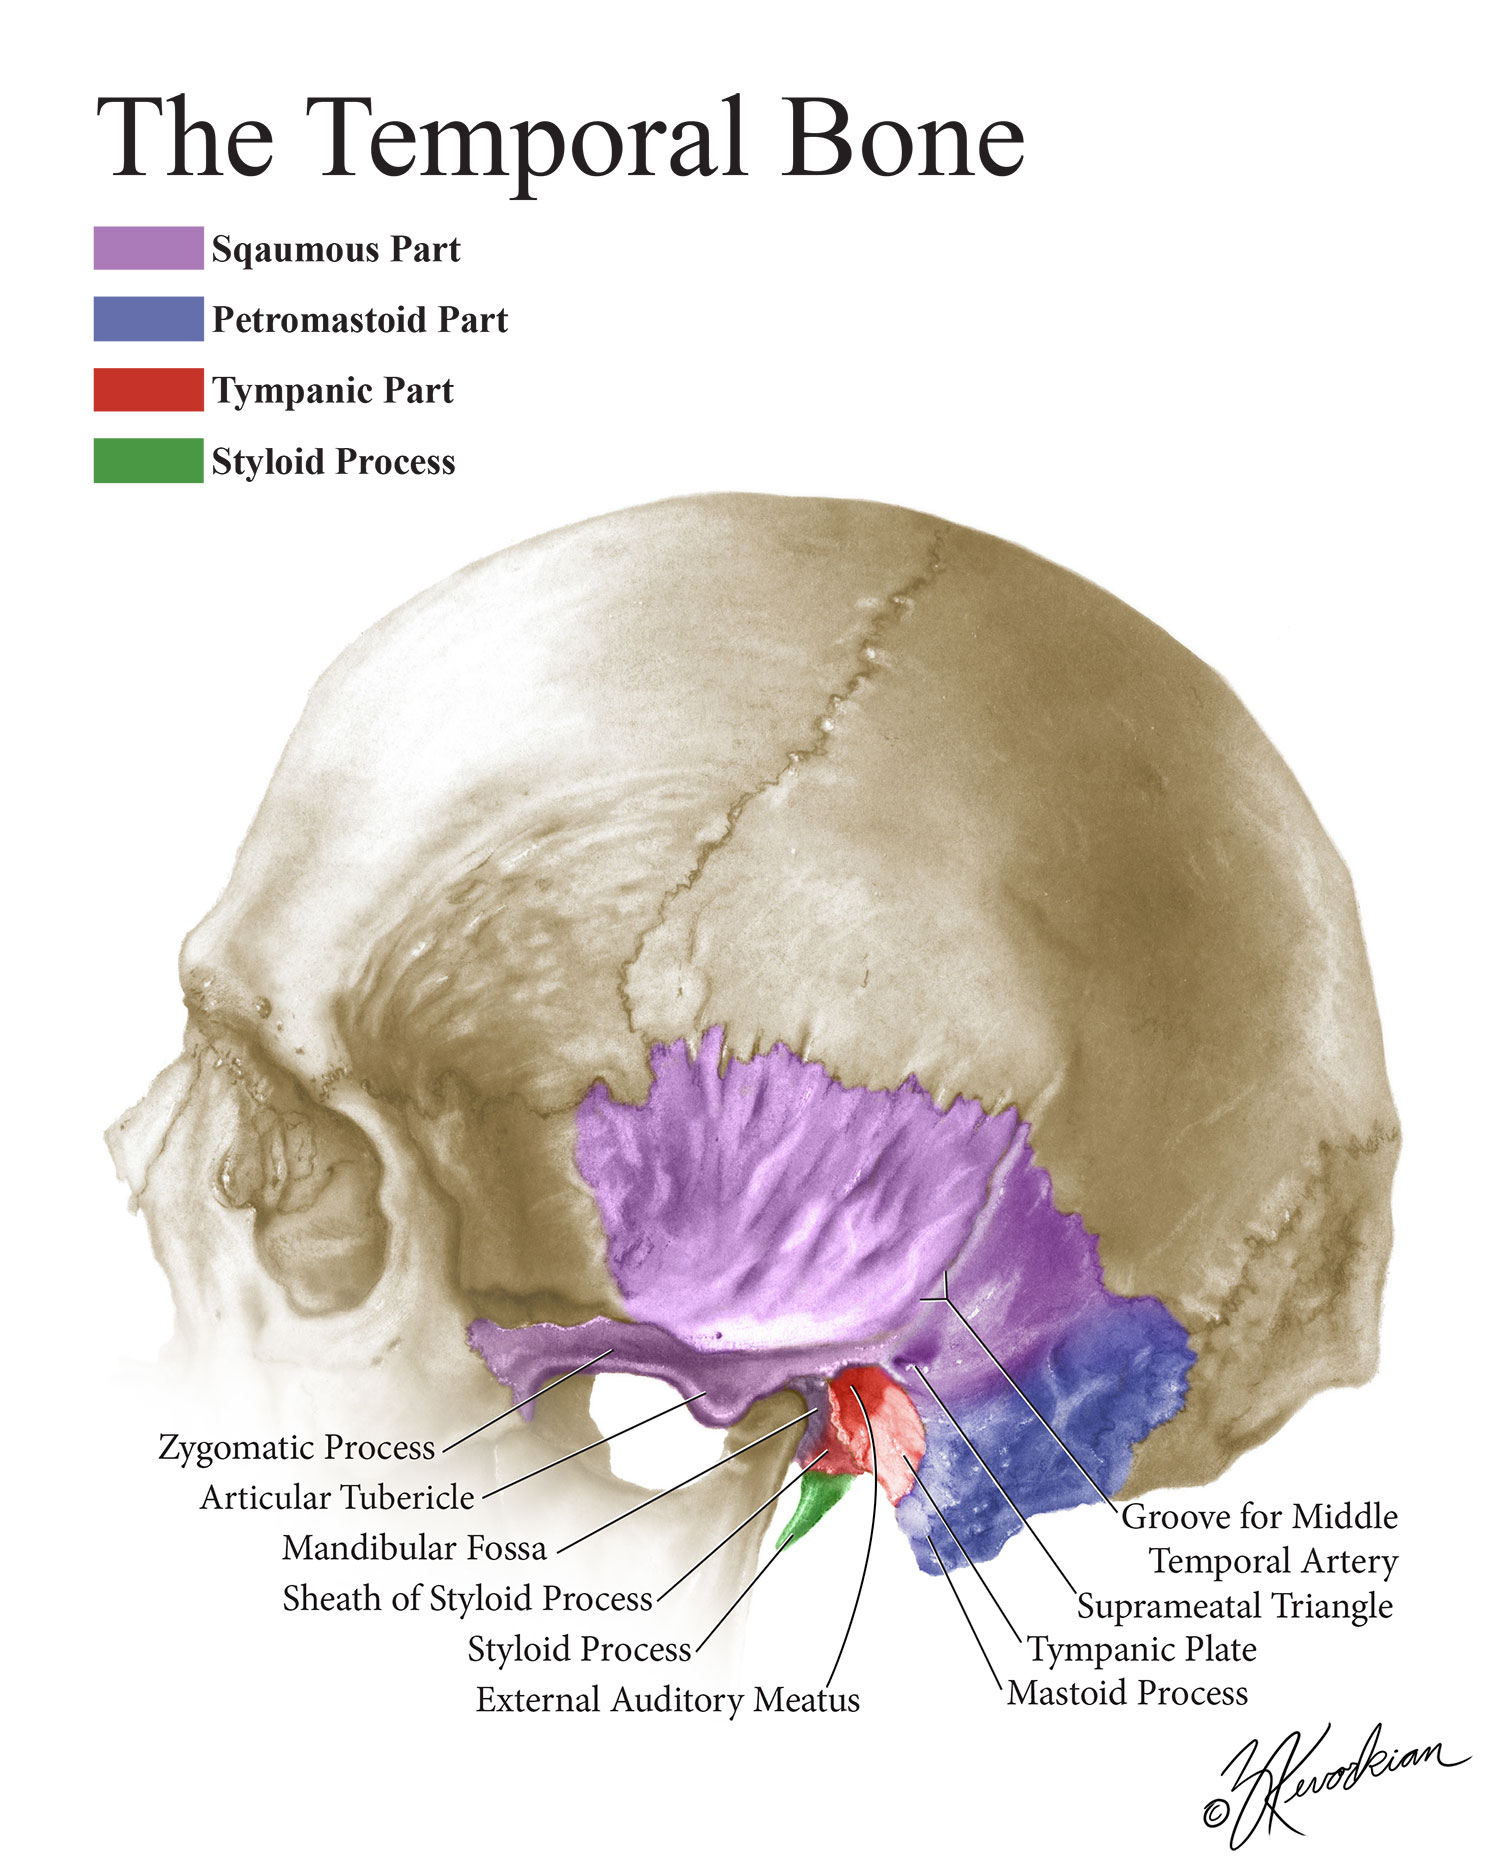 The Temporal Bone